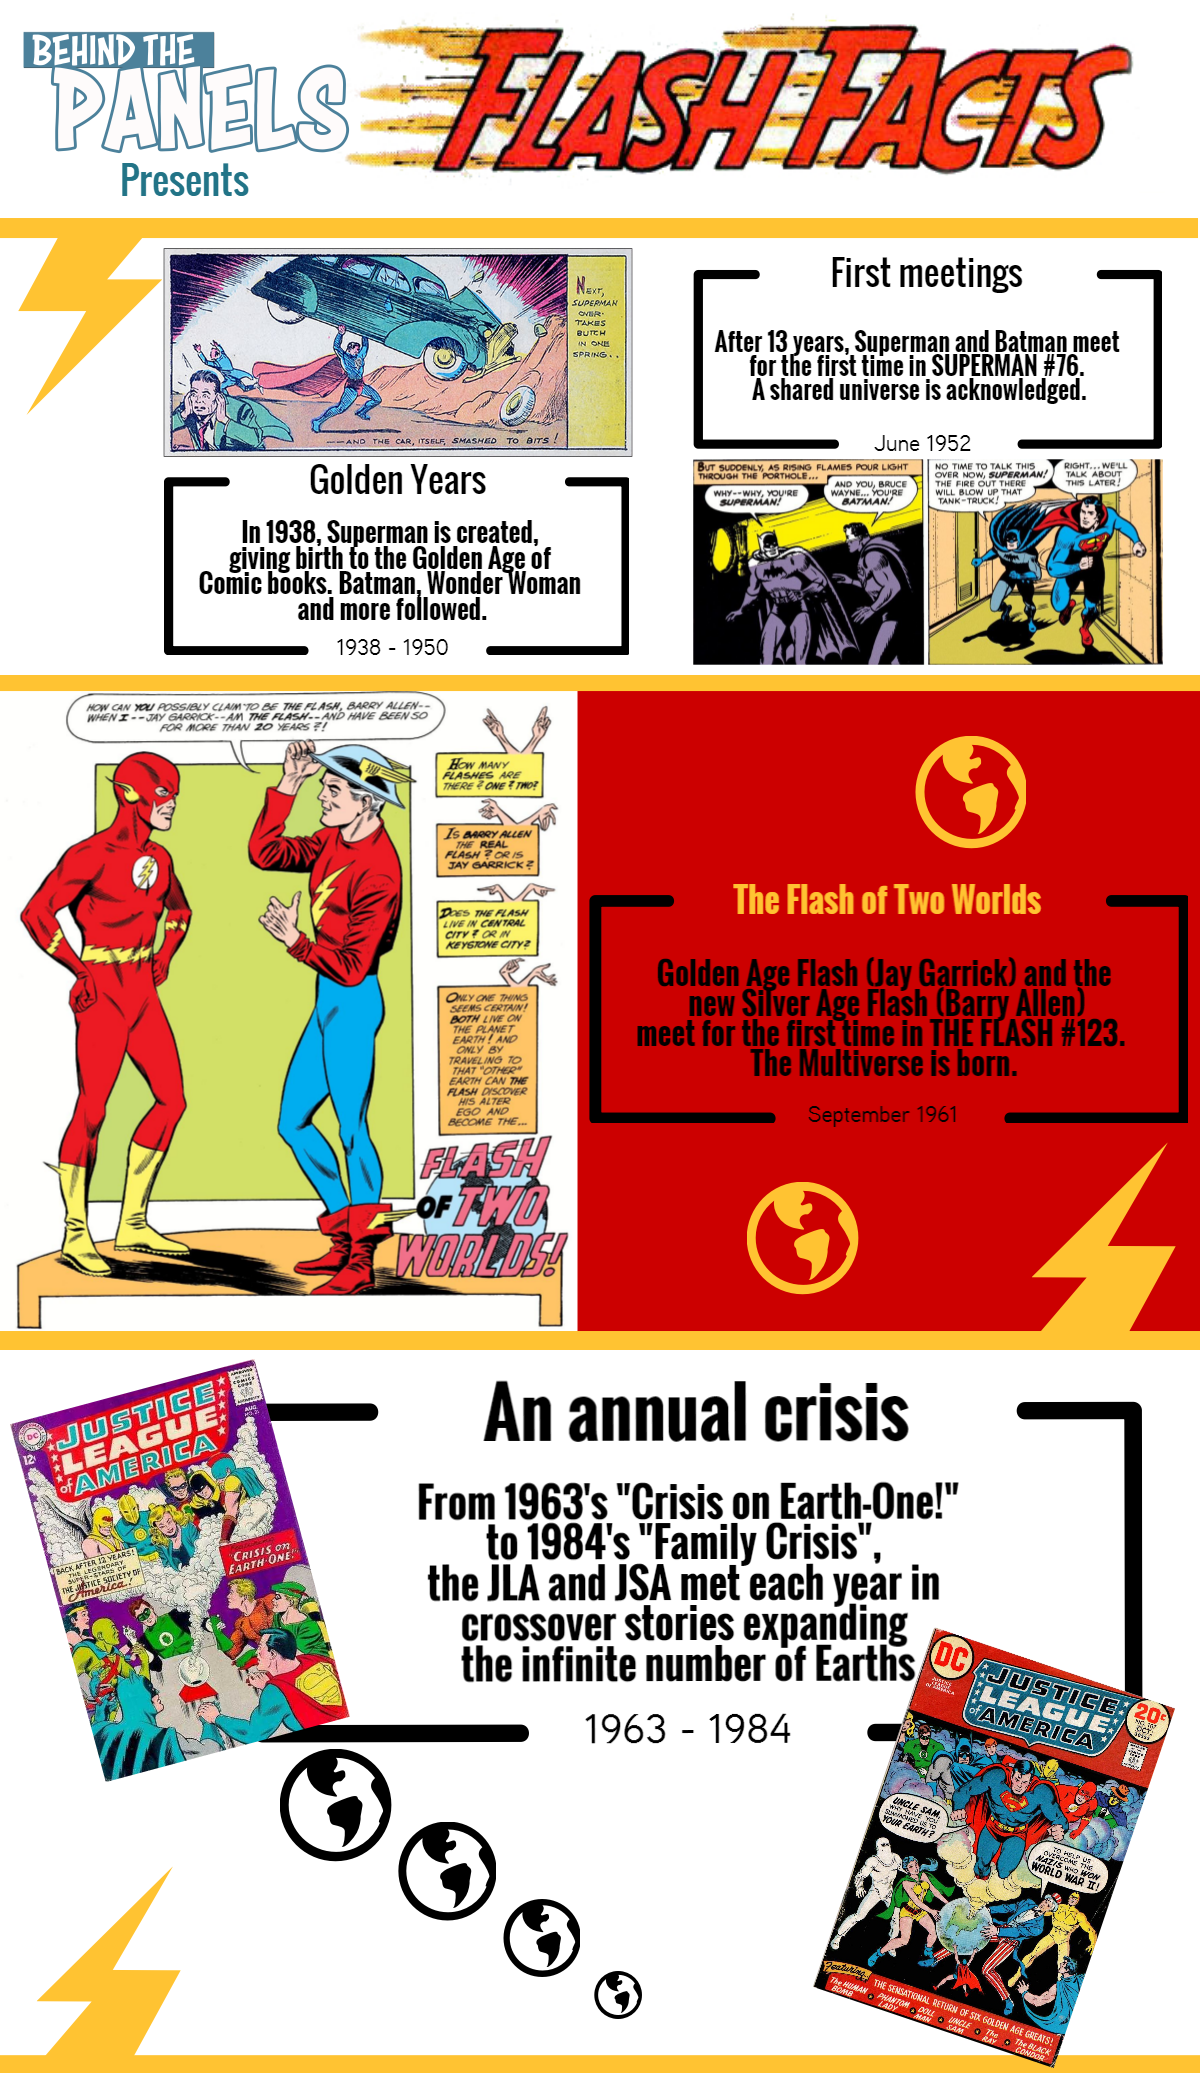 Behind The Panels Presents  Flash Facts #1 - Crisis Explained: Enter the Multiverse